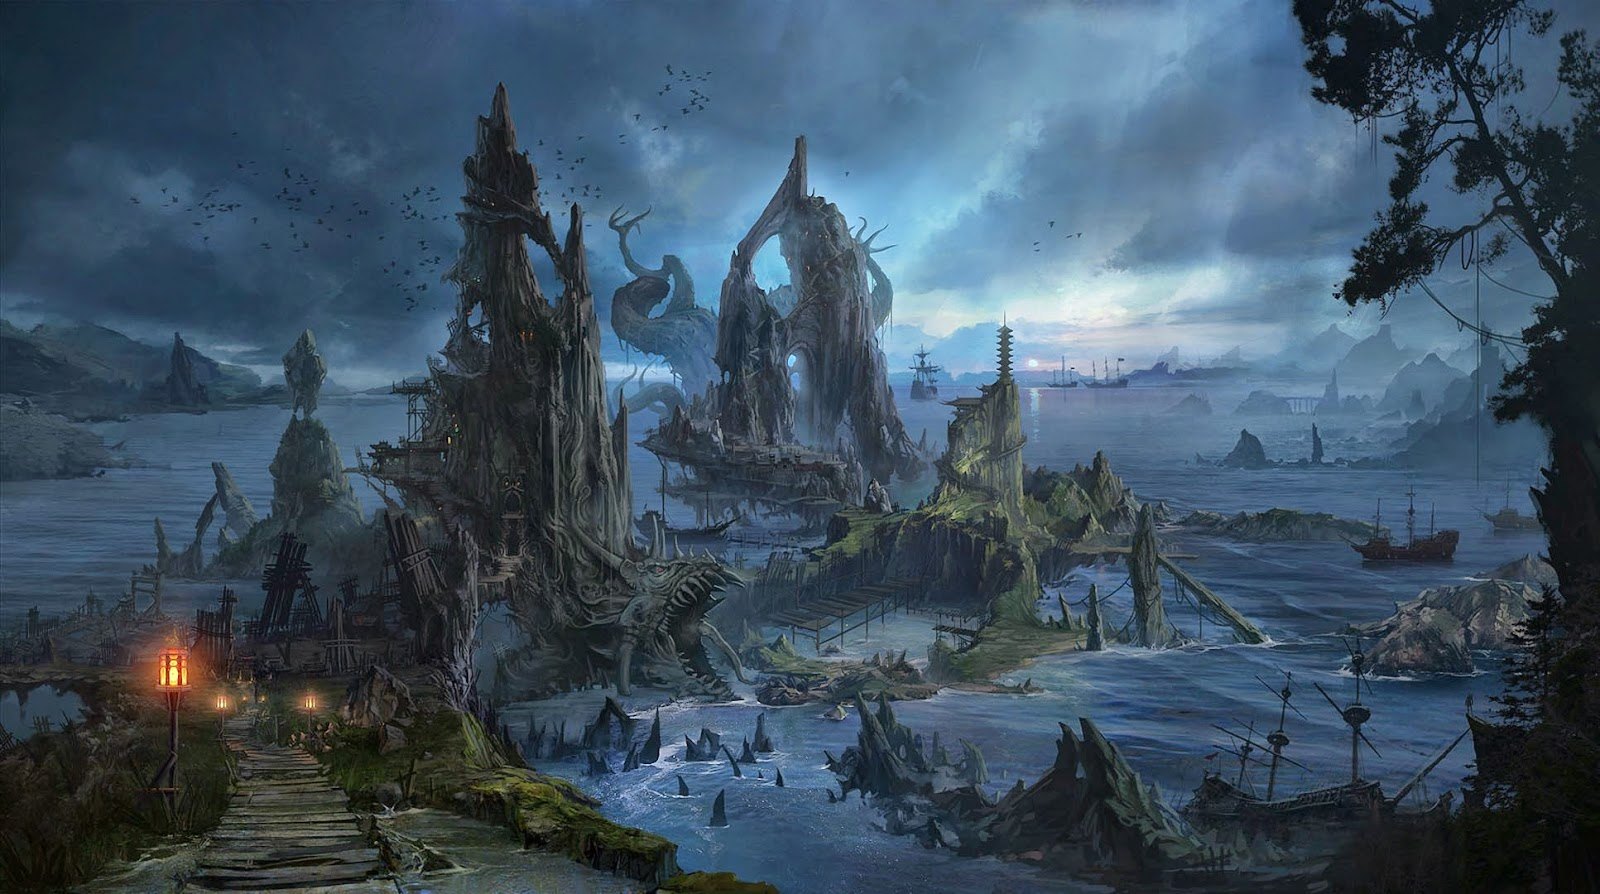 creepy fantasy world hd wallpaper - download awesome wallpapers